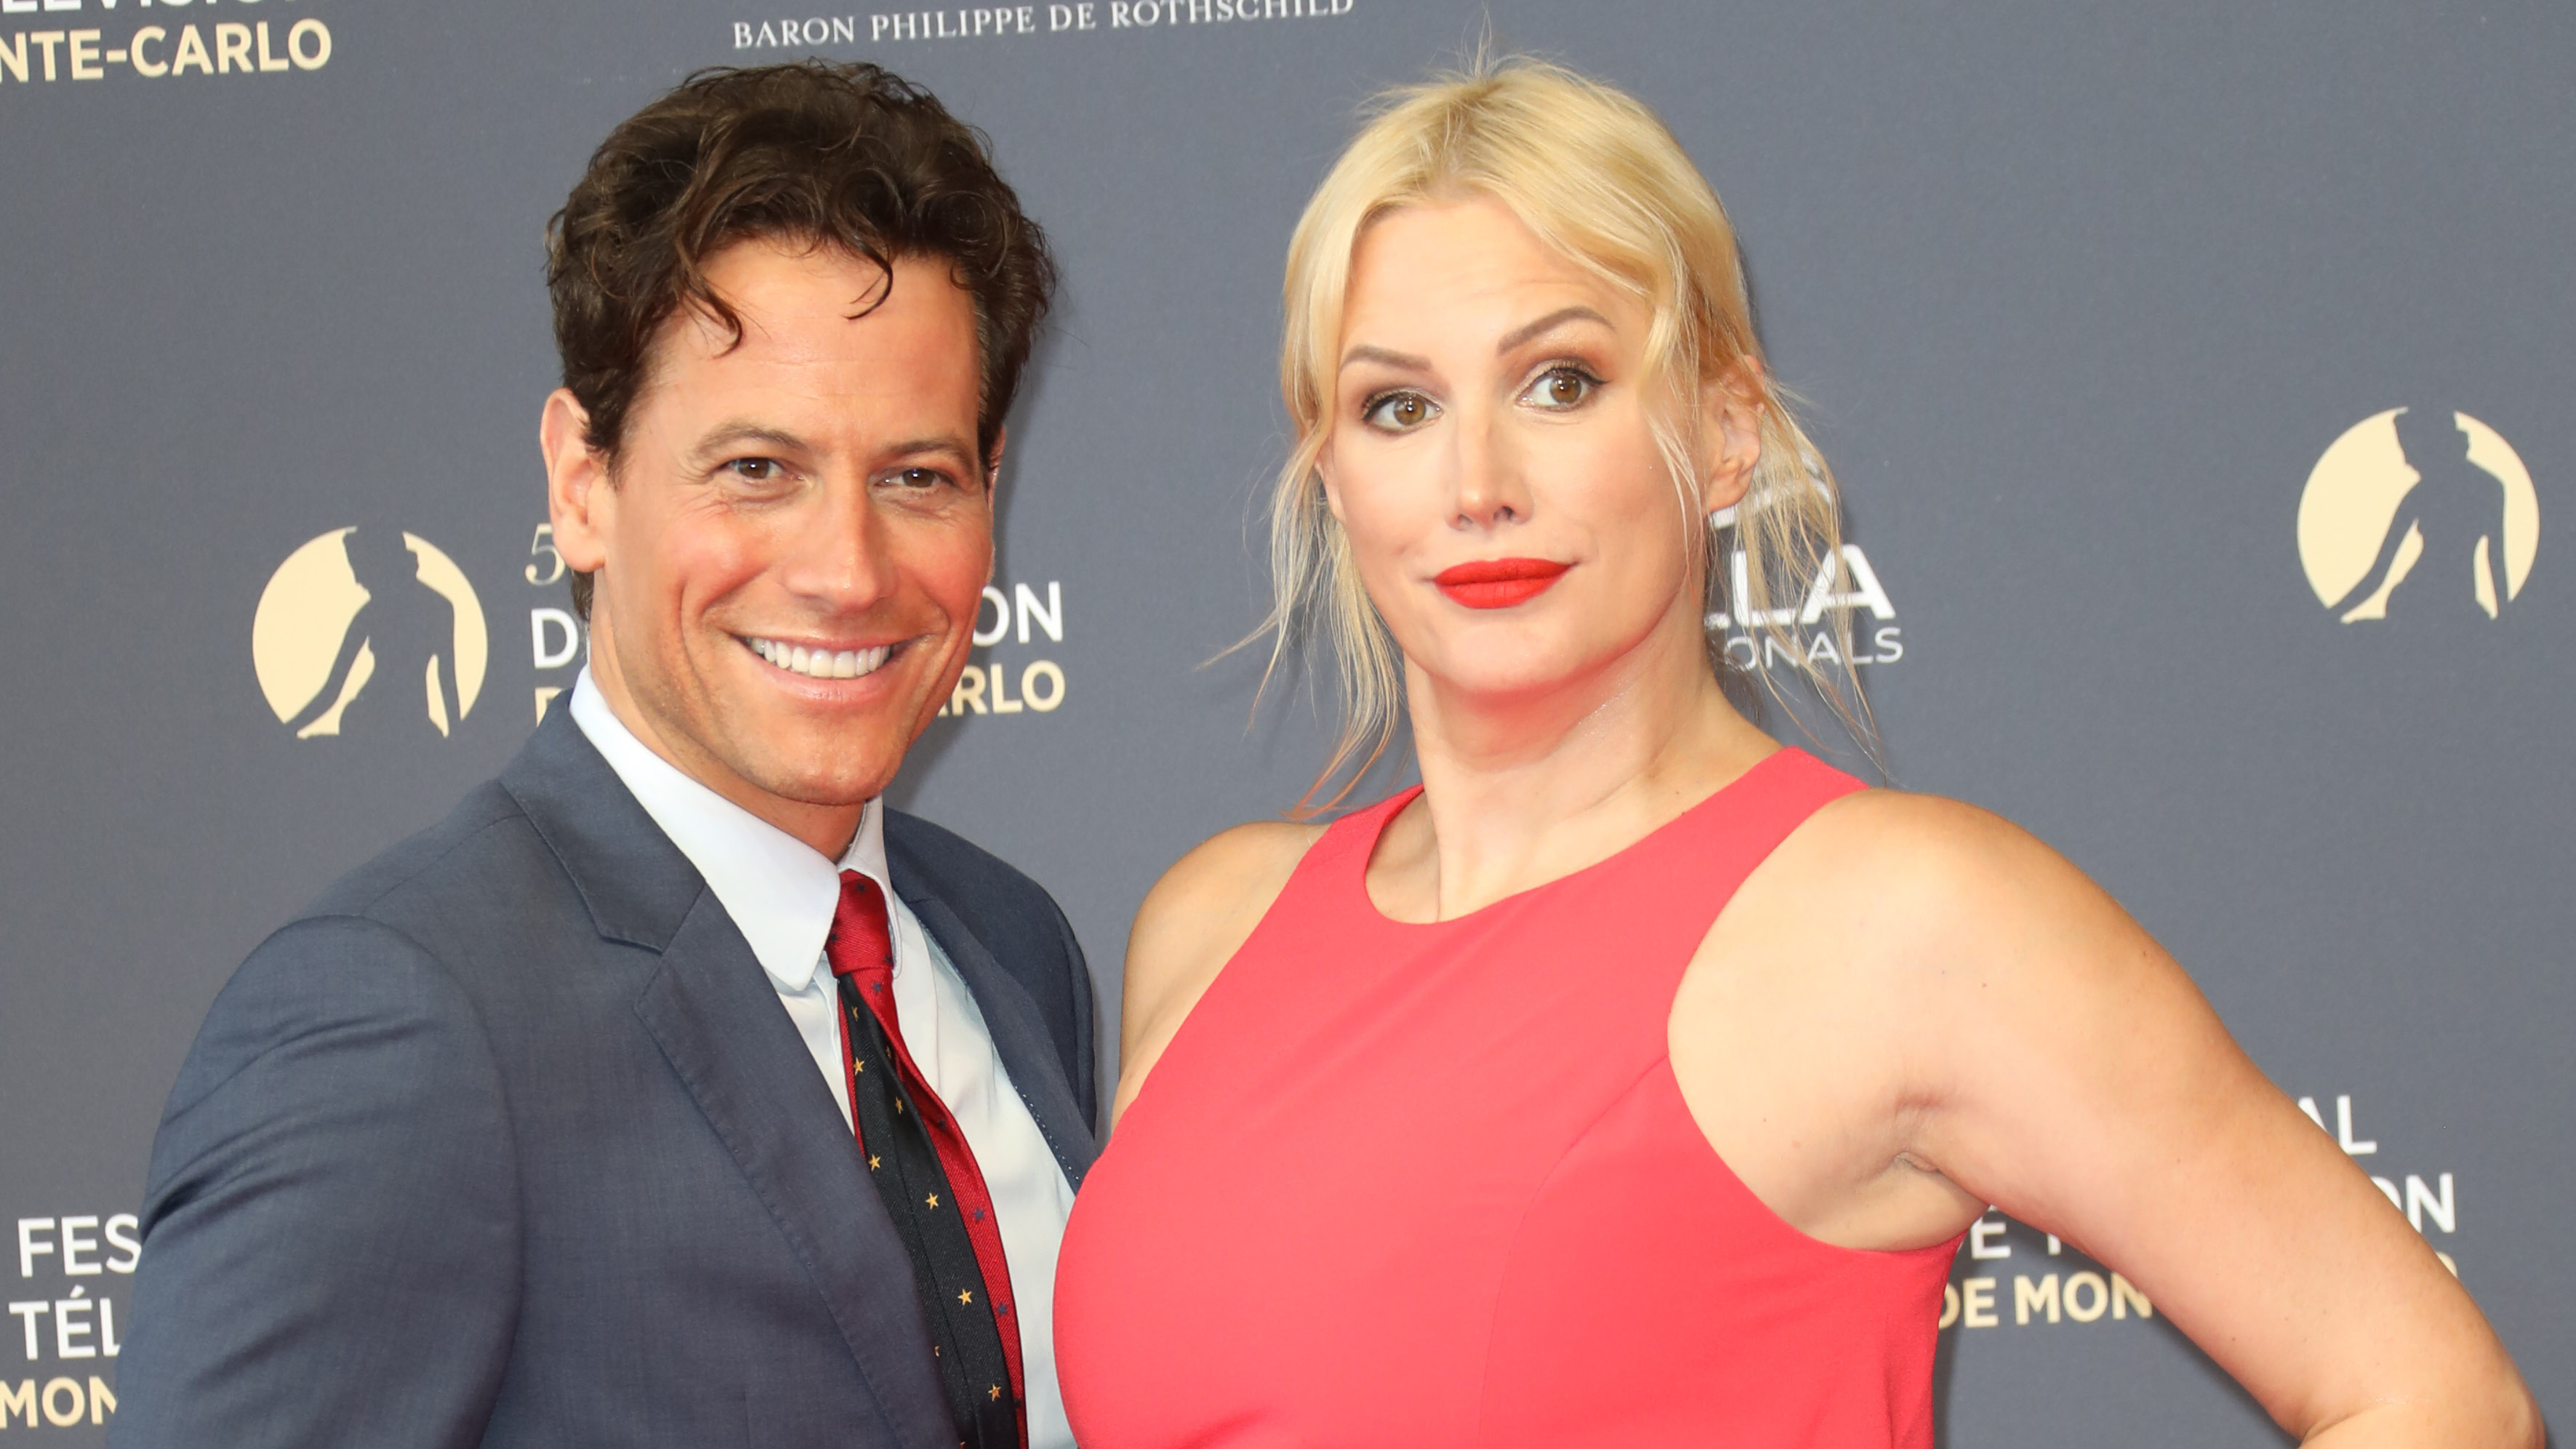 Ioan Gruffudd files for divorce from wife Alice Evans after 13 years of marriage: report